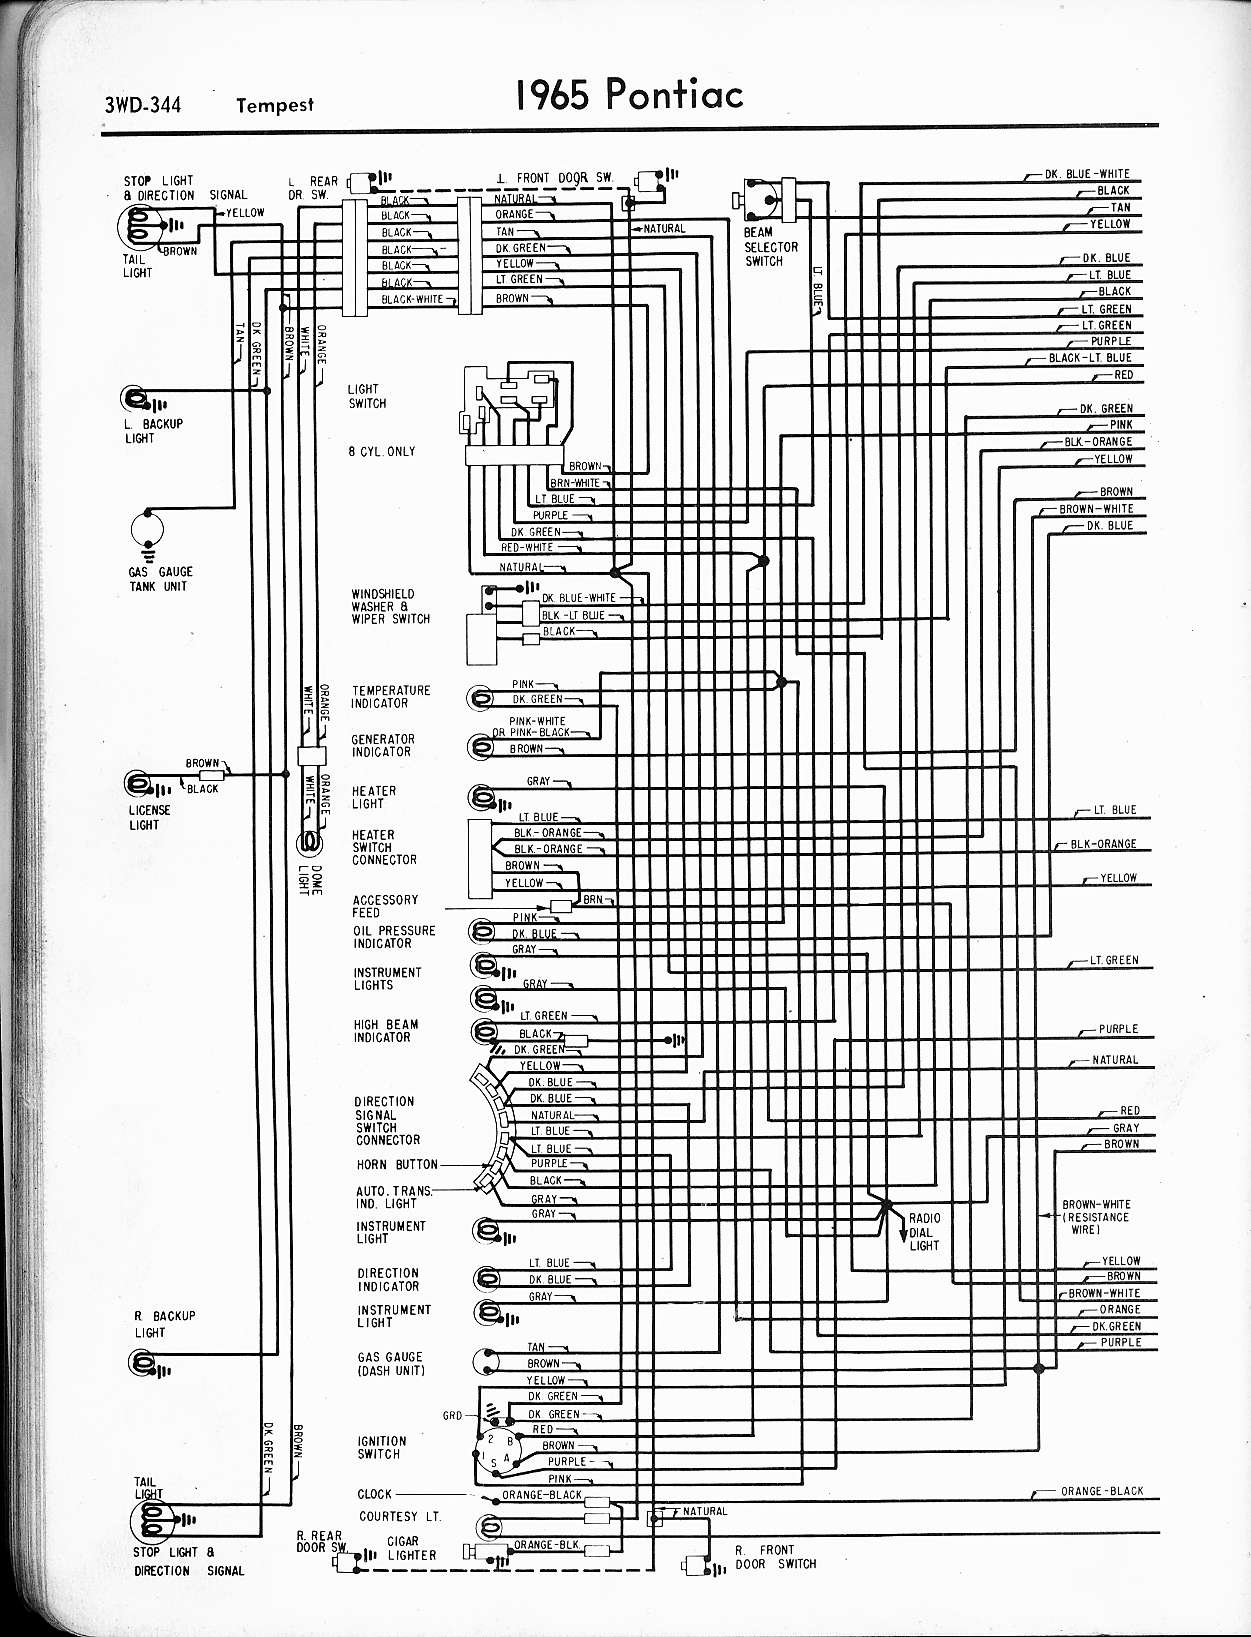 hight resolution of 1955 pontiac wiring diagram 16 16 stromoeko de u2022pontiac wiring harness diagram wiring library rh